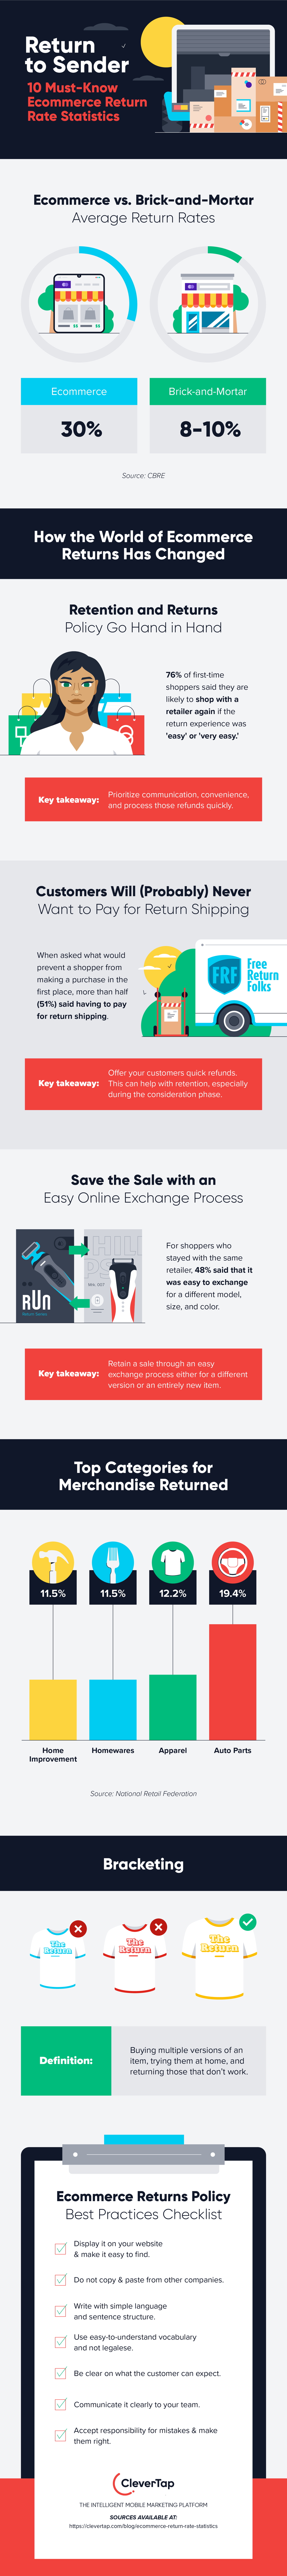 Ecommerce Return Rate Statistics and Trends